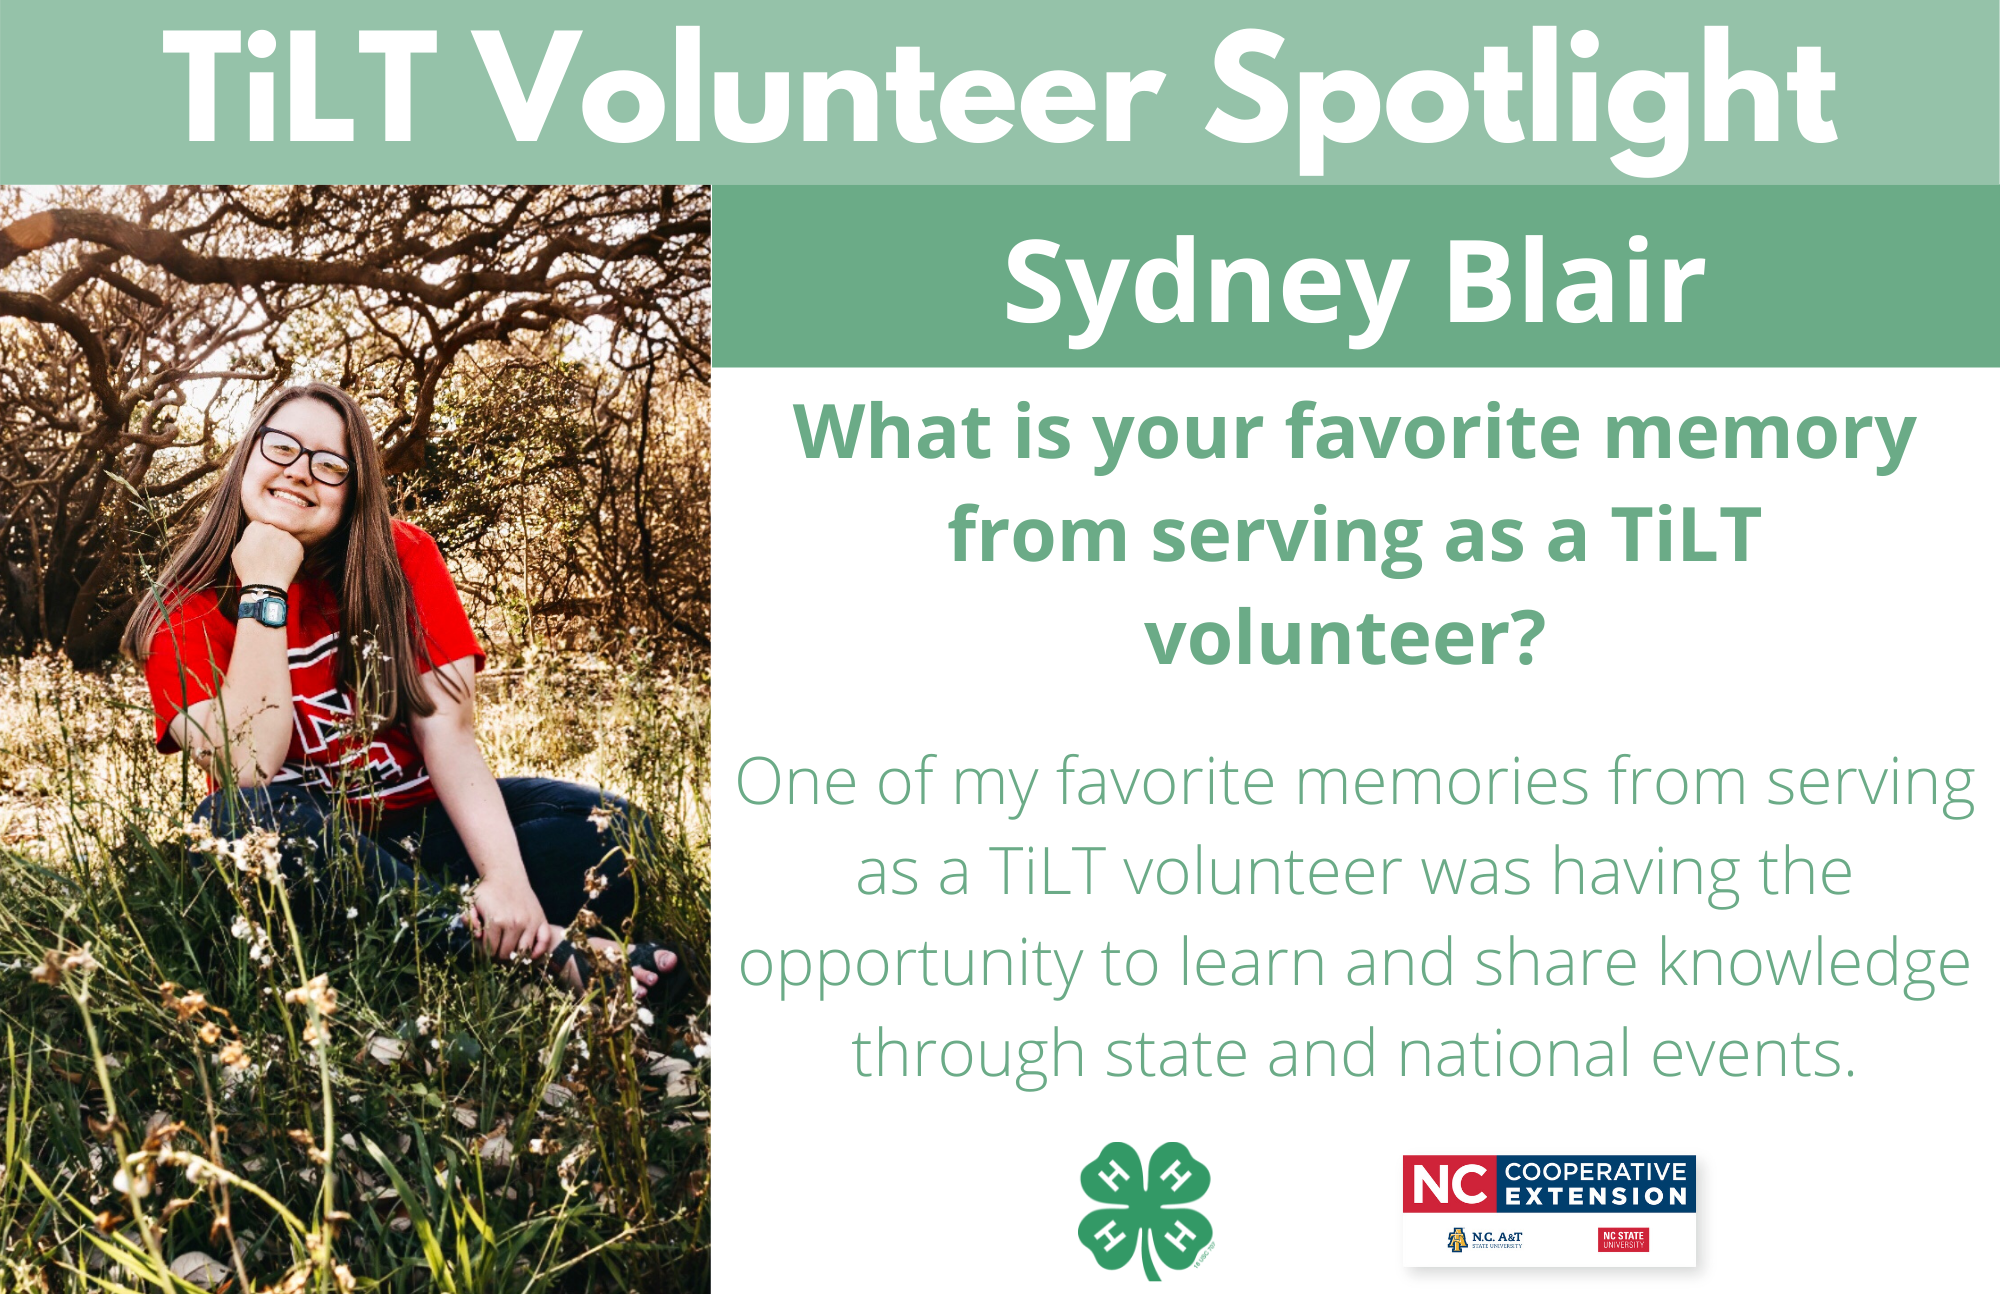 Headshot of Sydney Blair with following text to the right of image. TiLT Volunteer Spotlight. Sydney Blair. What is your favorite memory from serving as a TiLT volunteer? One of my favorite memories from serving as a TiLT volunteer was having the opportunity to learn and share knowledge through state and national events.